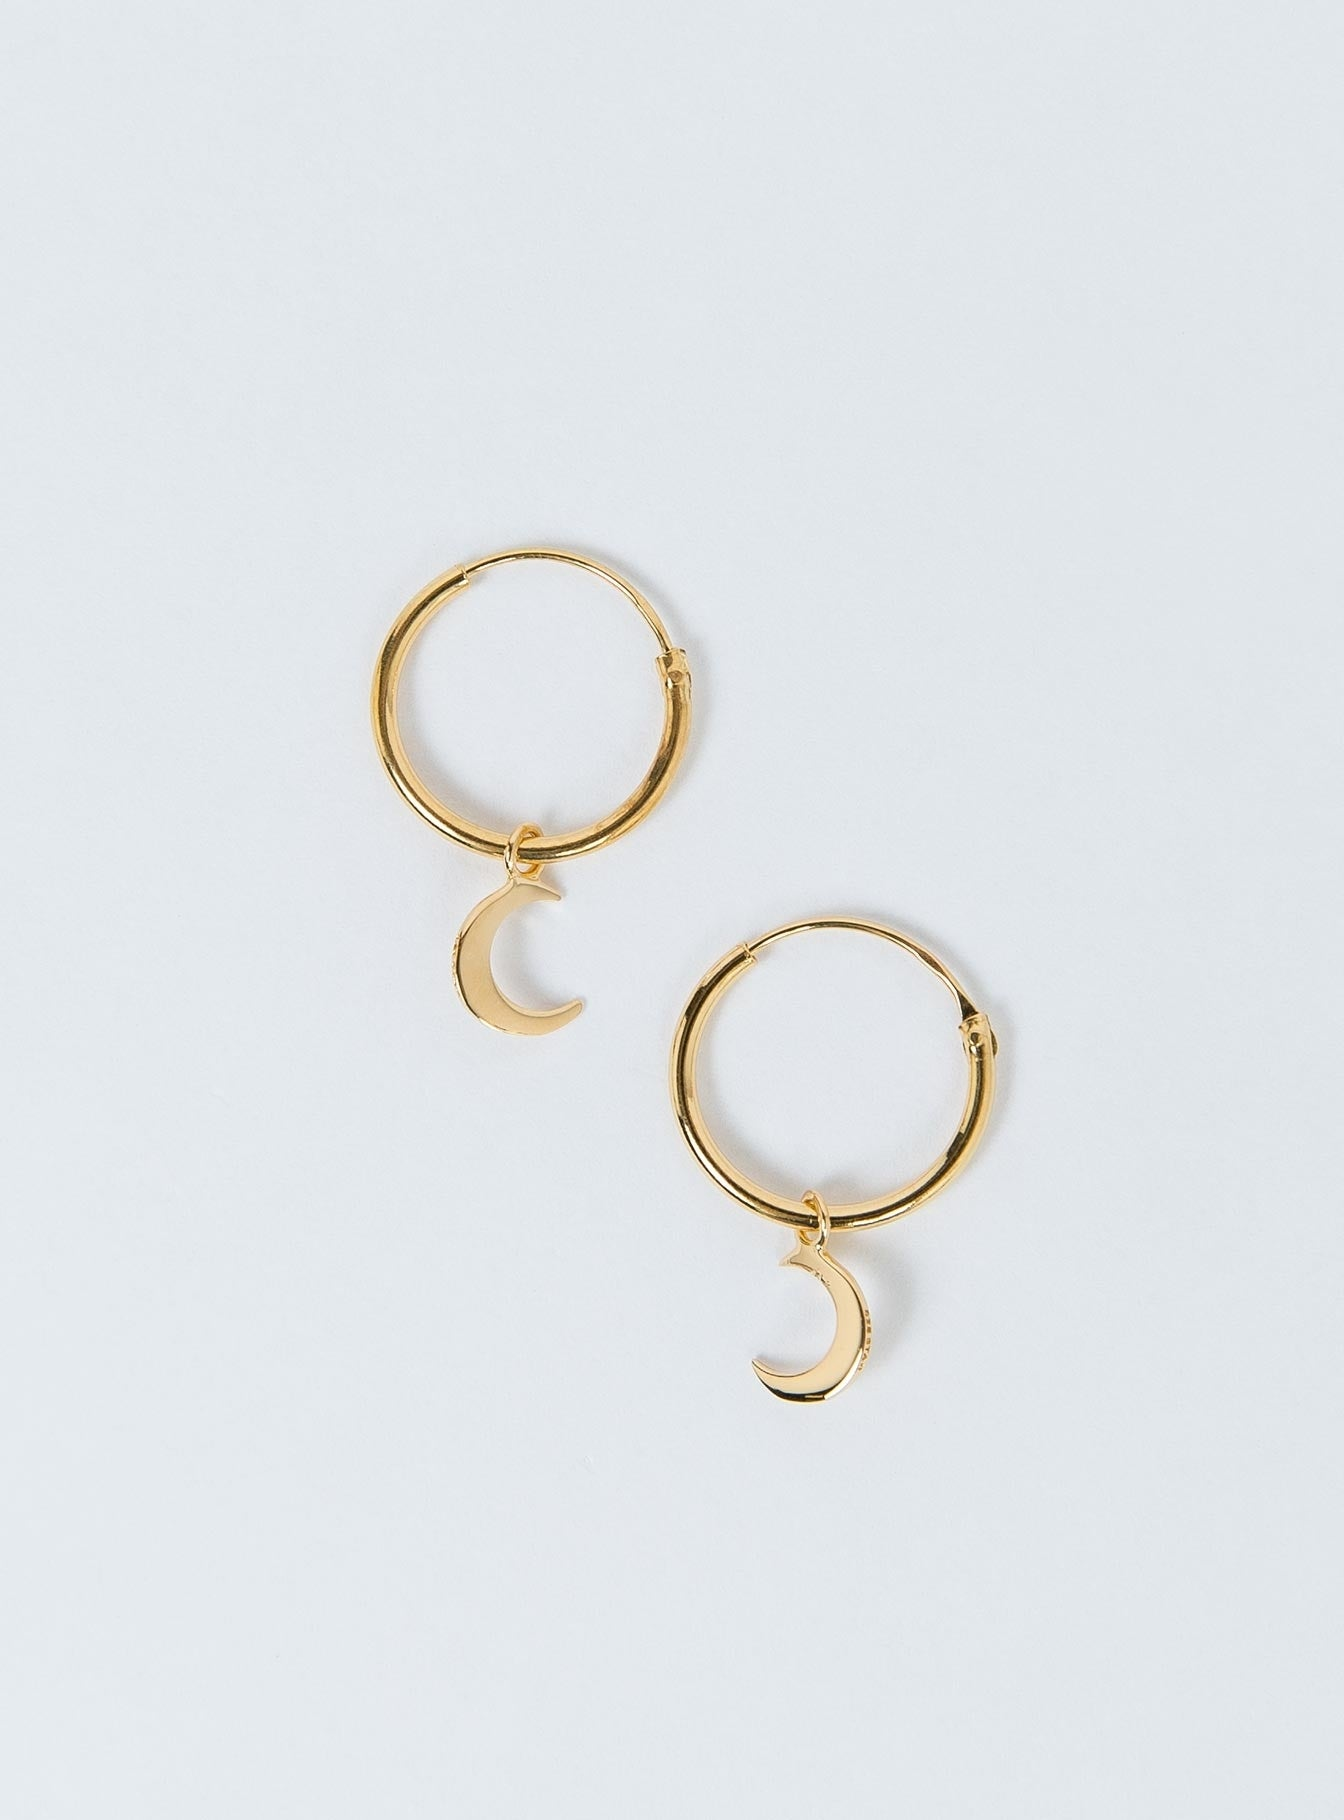 Midsummer Star Moon Dream Sleepers 18K Gold Vermeil